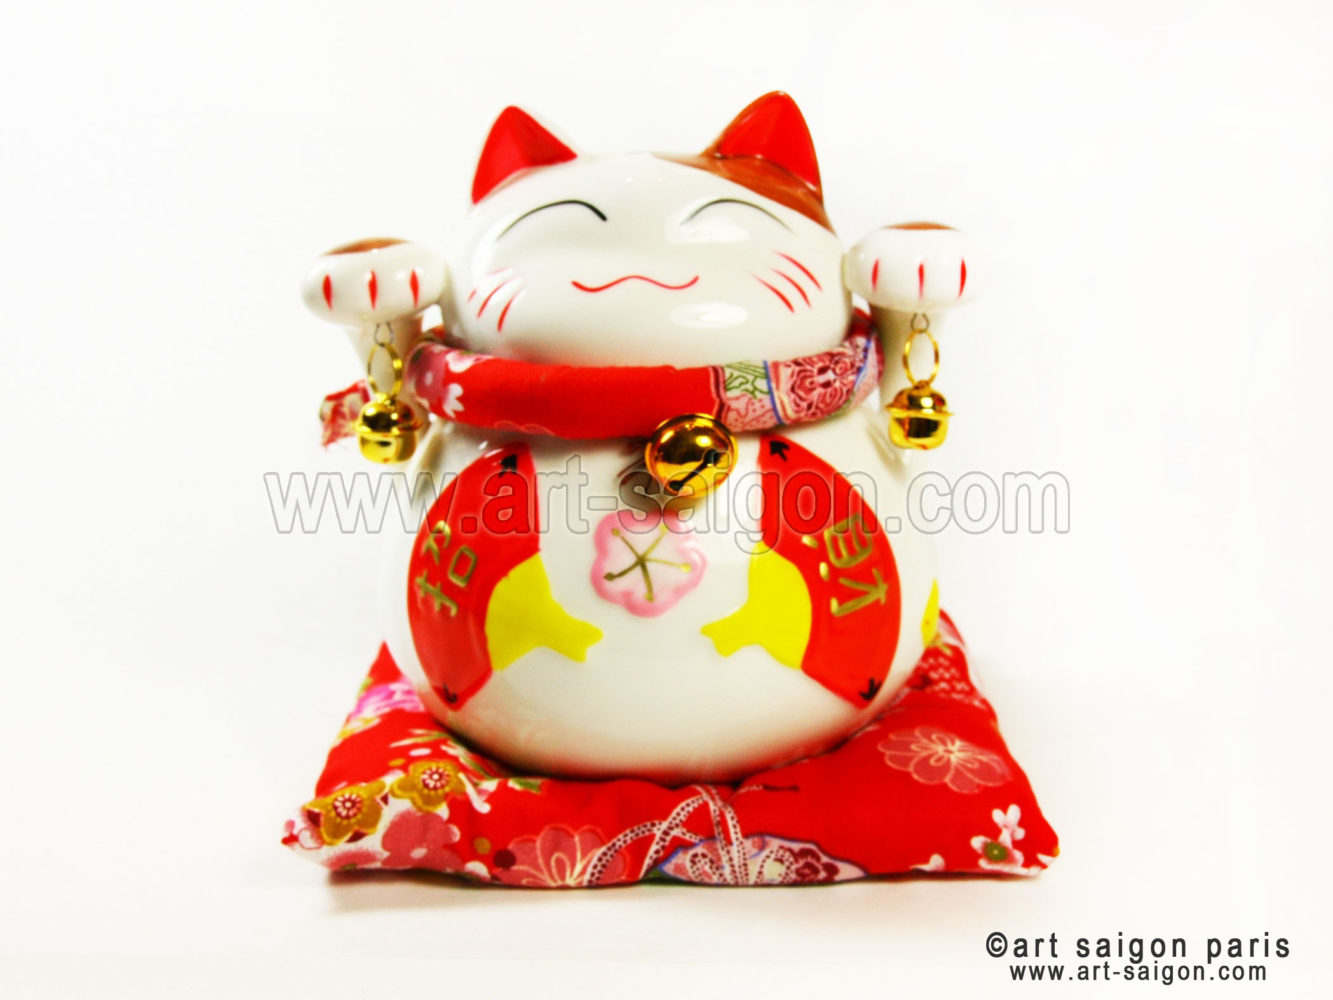 maneki neko chat porte bonheur japonais japon porcelaine blanc decoration asiatique art-saigon